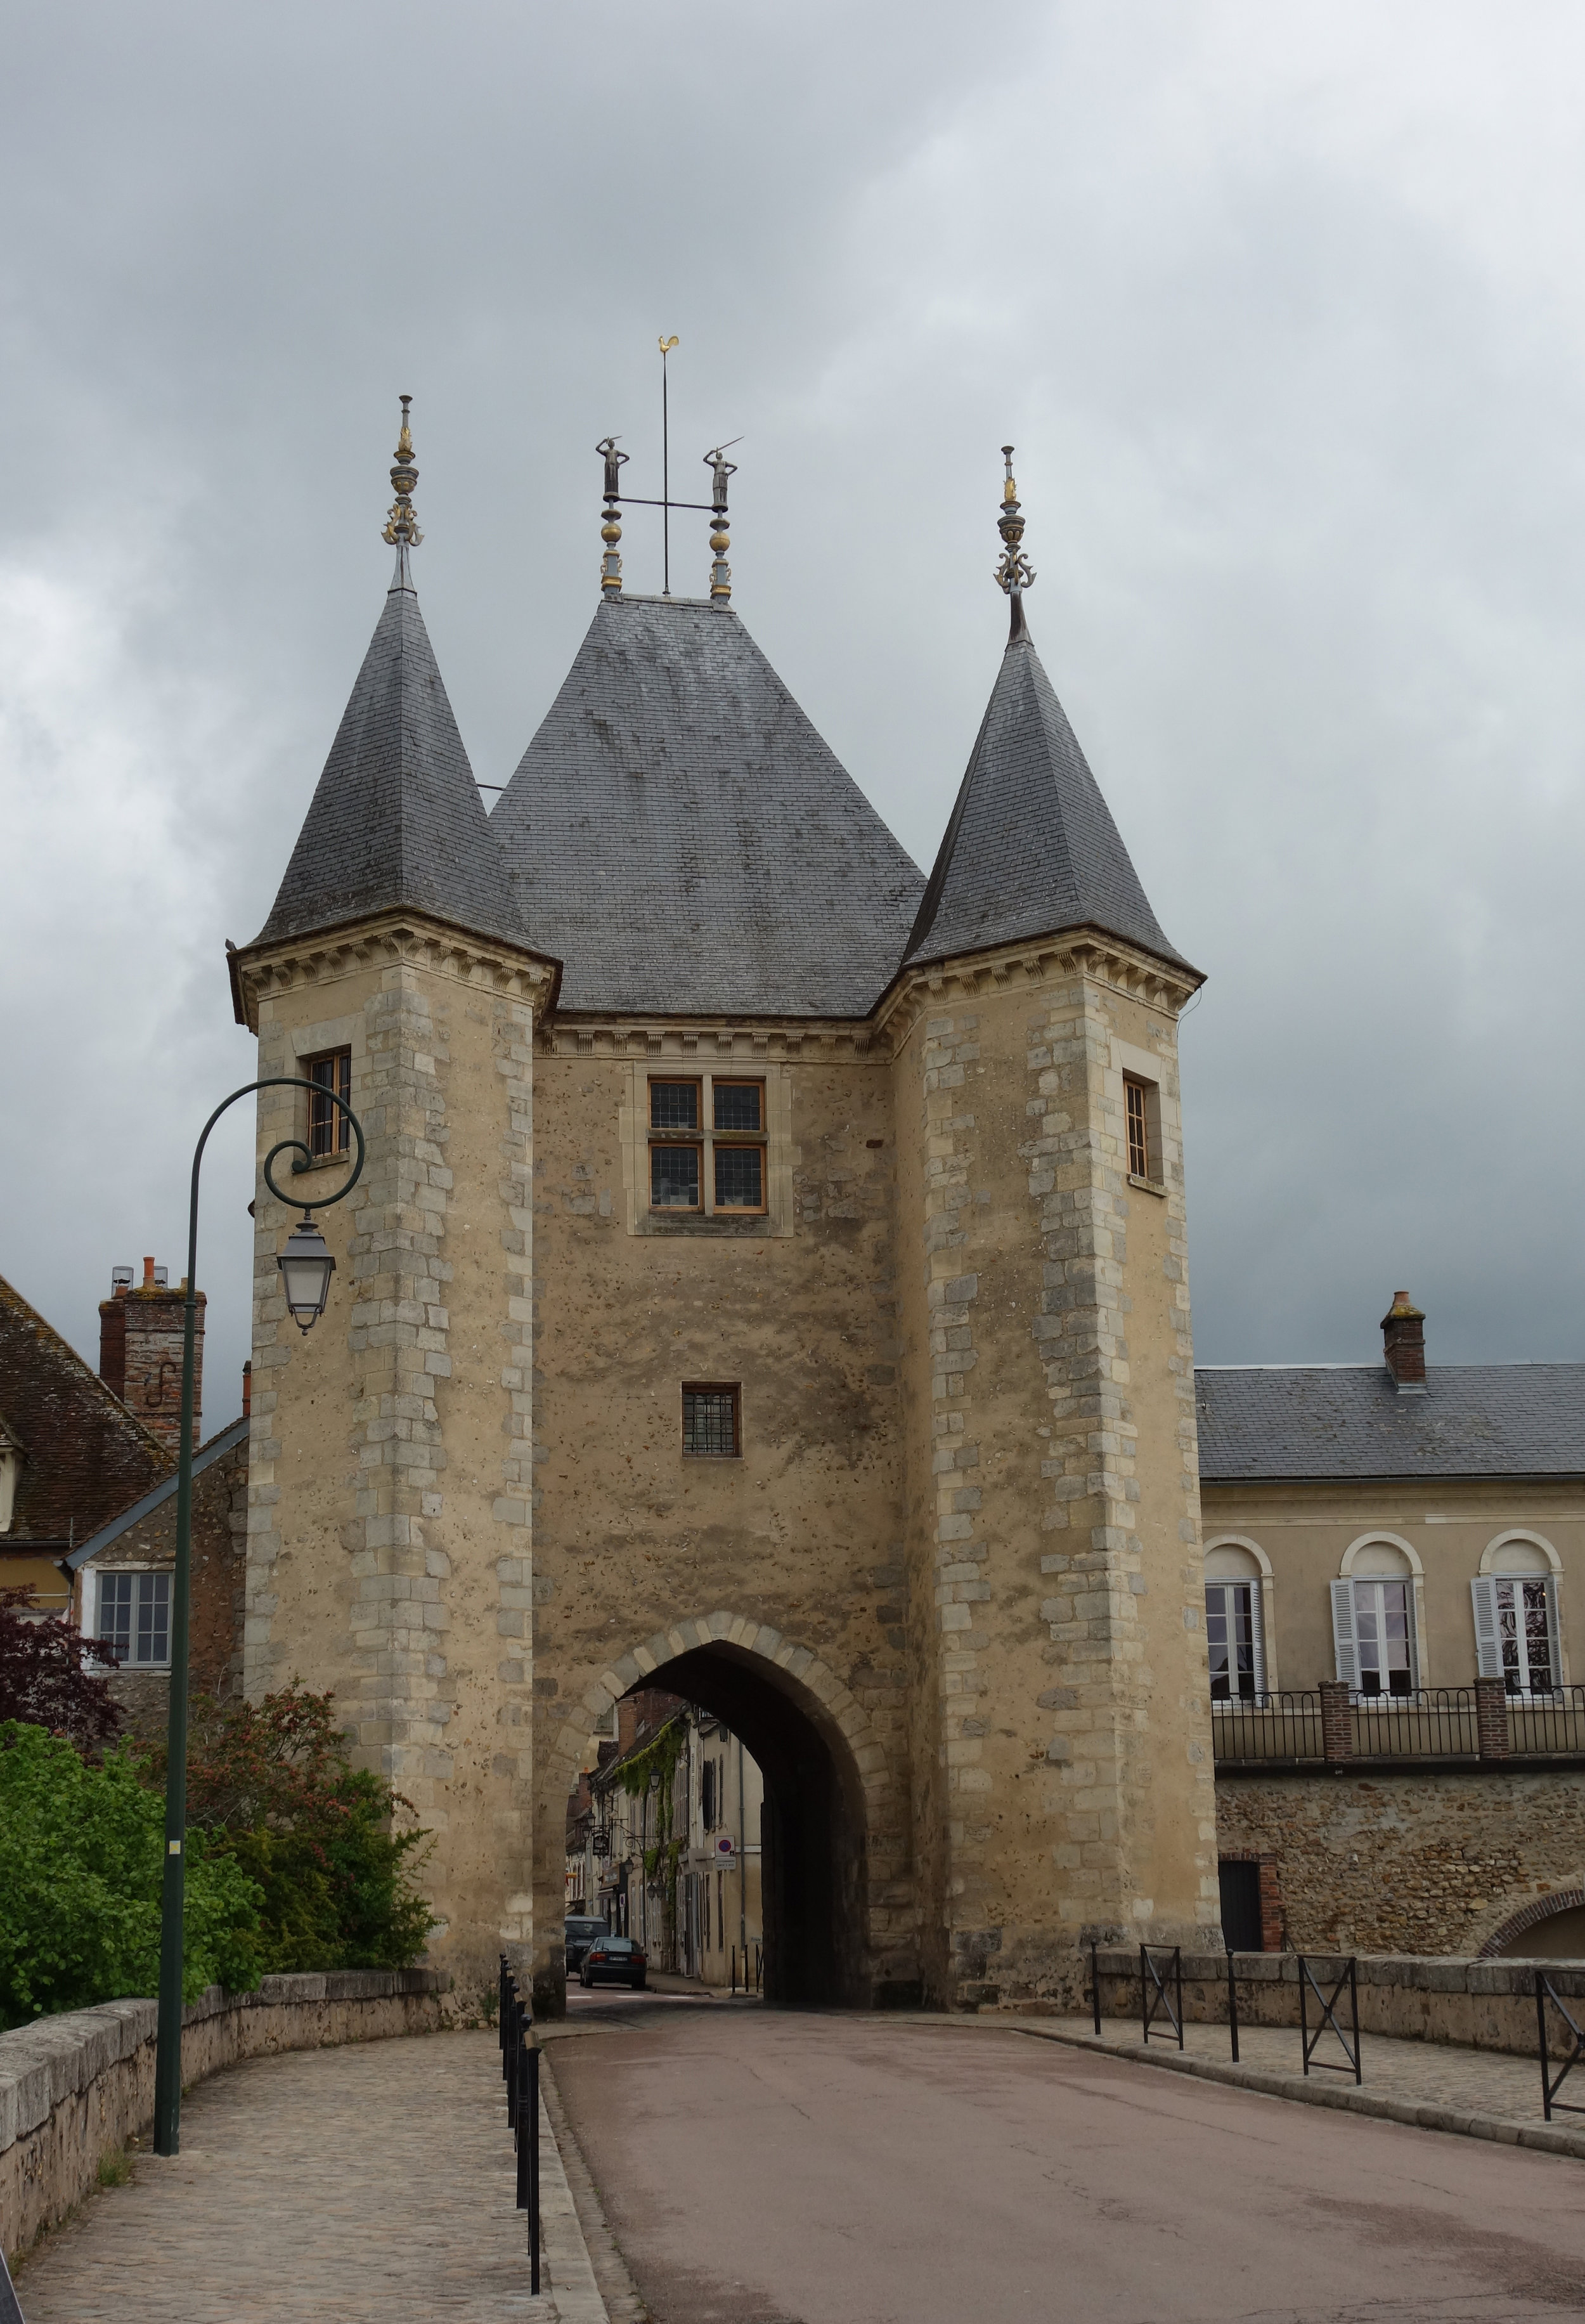 The entrance to Villeneuve-sur-Yonne, with the Museum in the right hand building. (Photograph courtesy of Michelle Anderson)